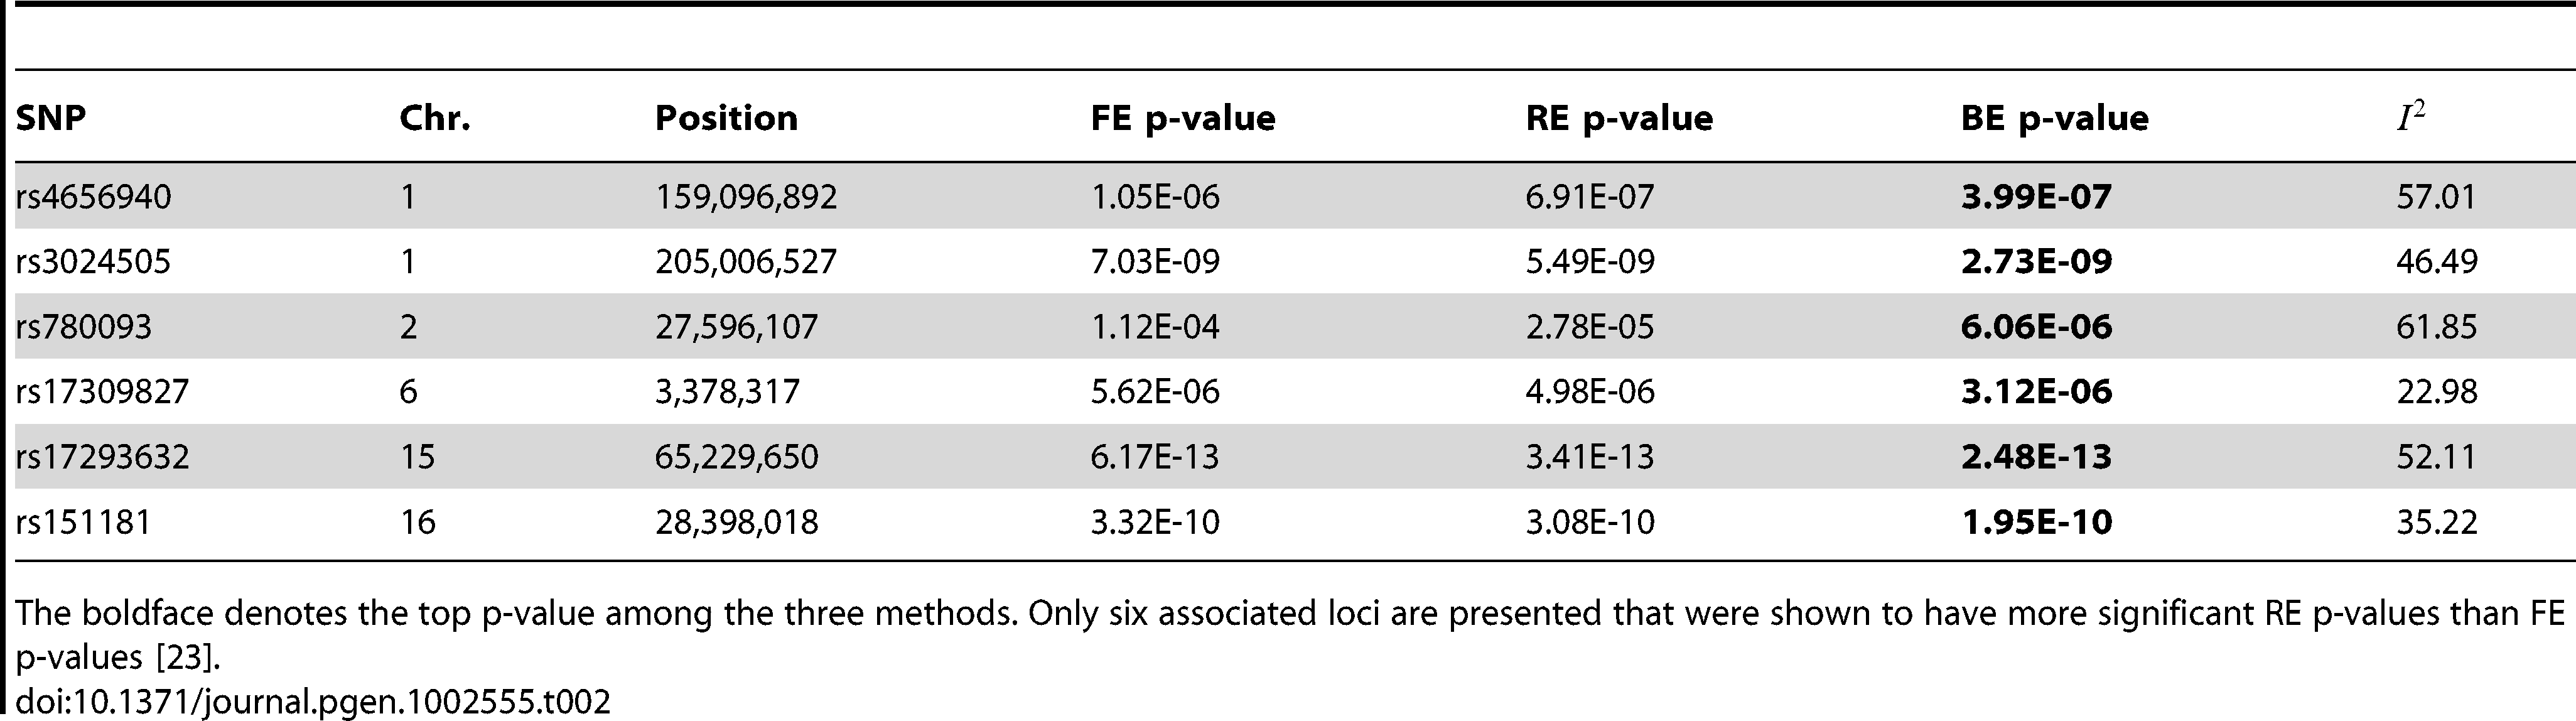 """Application of FE, RE, and BE to the Crohns disease meta-analysis results of Franke <i>et al.</i> <em class=""""ref"""">[13]</em>."""